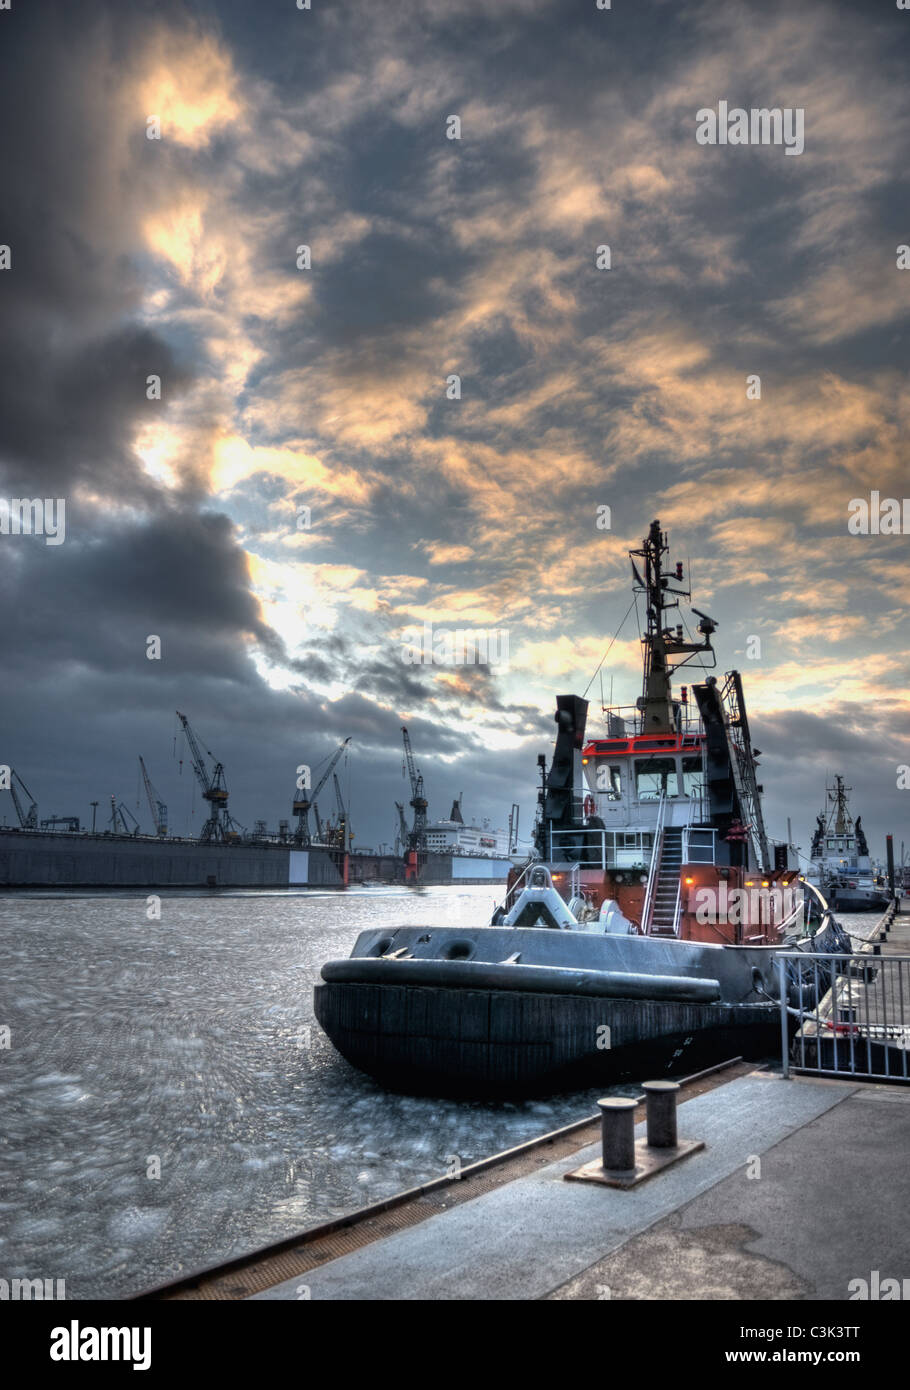 Germany, Hamburg, View of tugs at harbour in winter - Stock Image